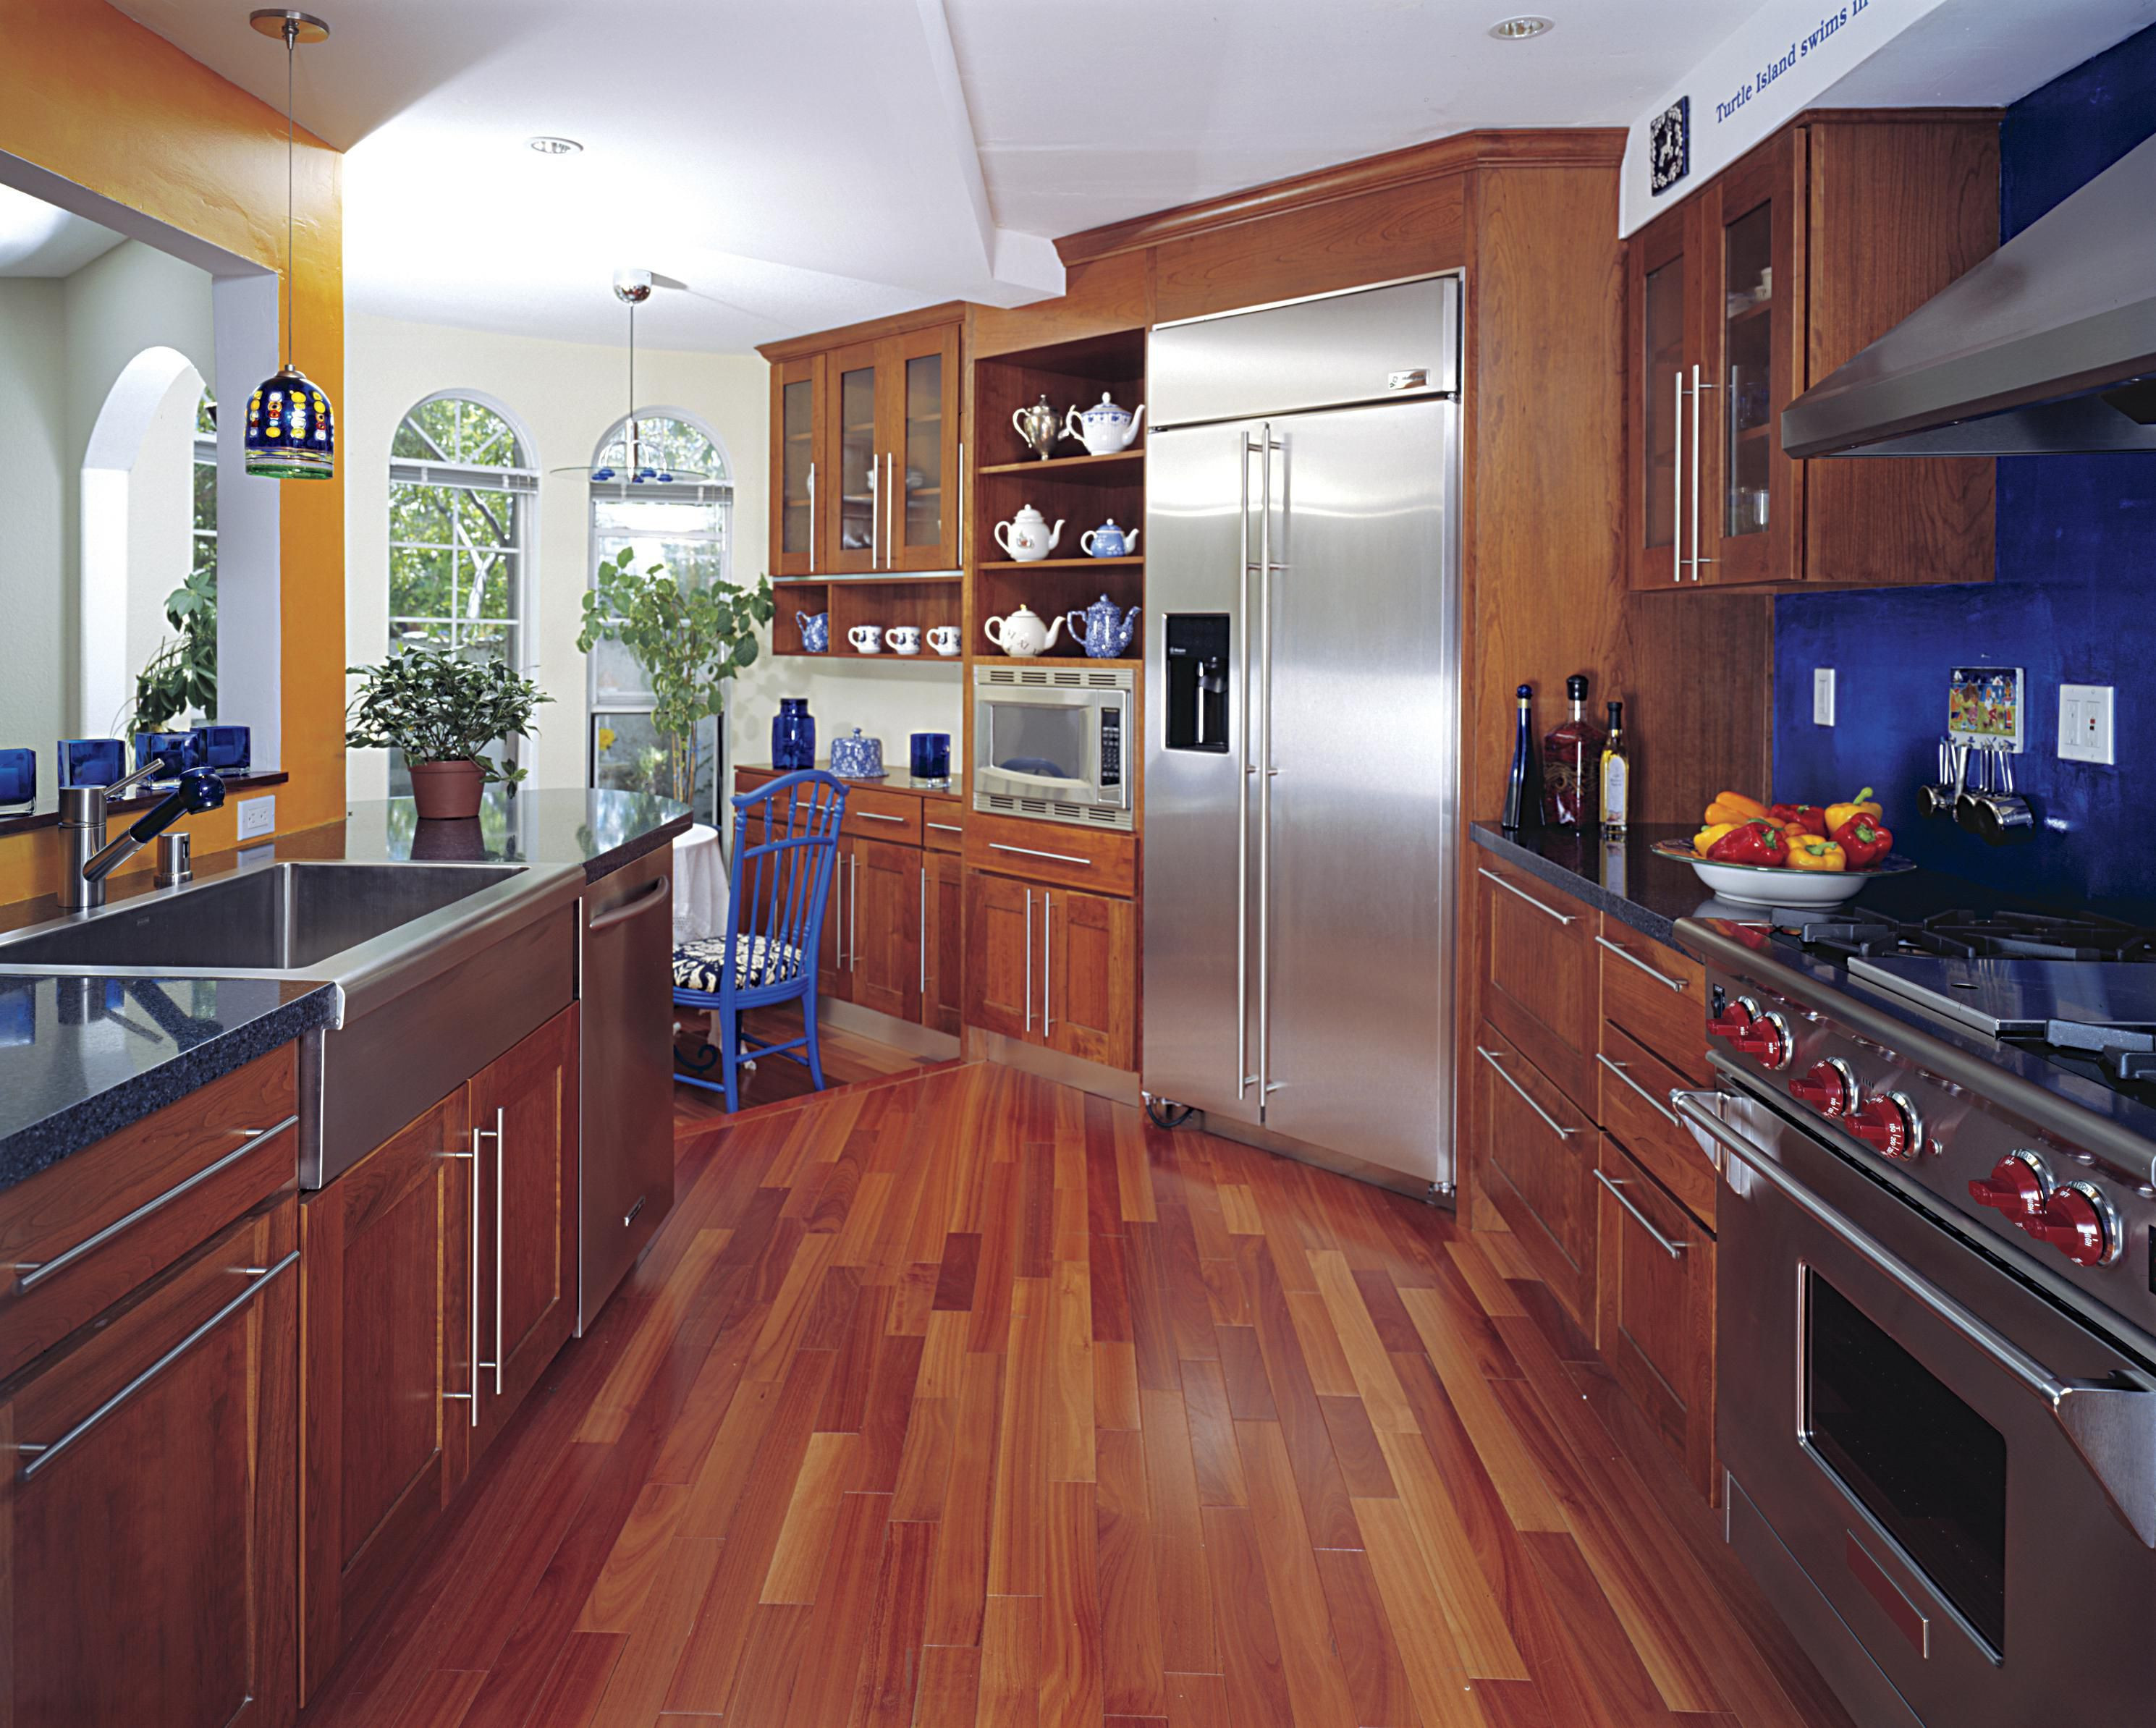 how should hardwood floor run of hardwood floor in a kitchen is this allowed within 186828472 56a49f3a5f9b58b7d0d7e142